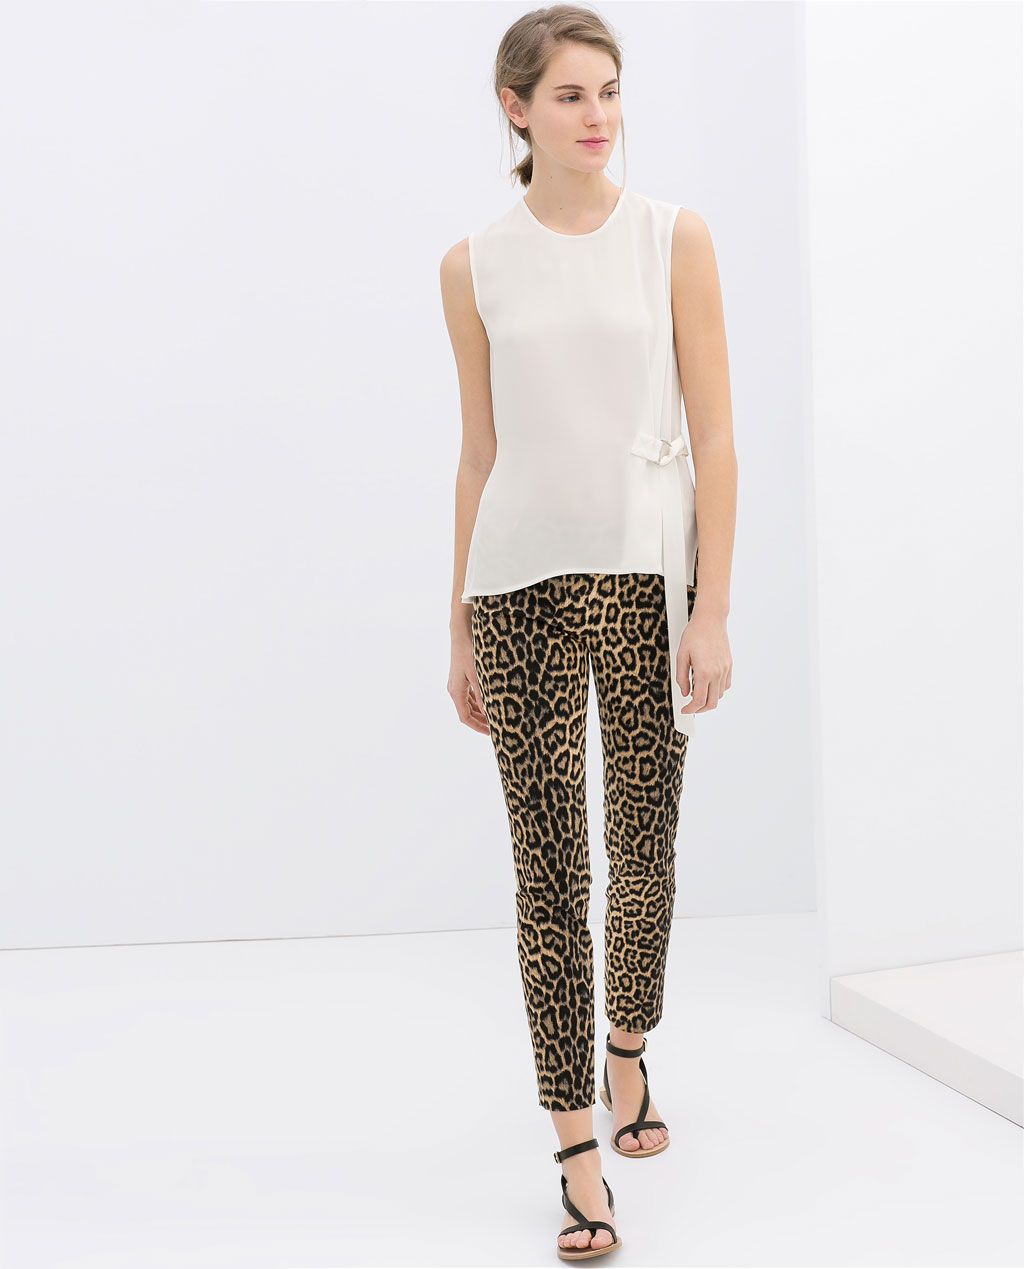 Zara leopard pants Reposh, bought them thinking they would fit but too  small for me, NWOT, never worn Zara Pants Skinny